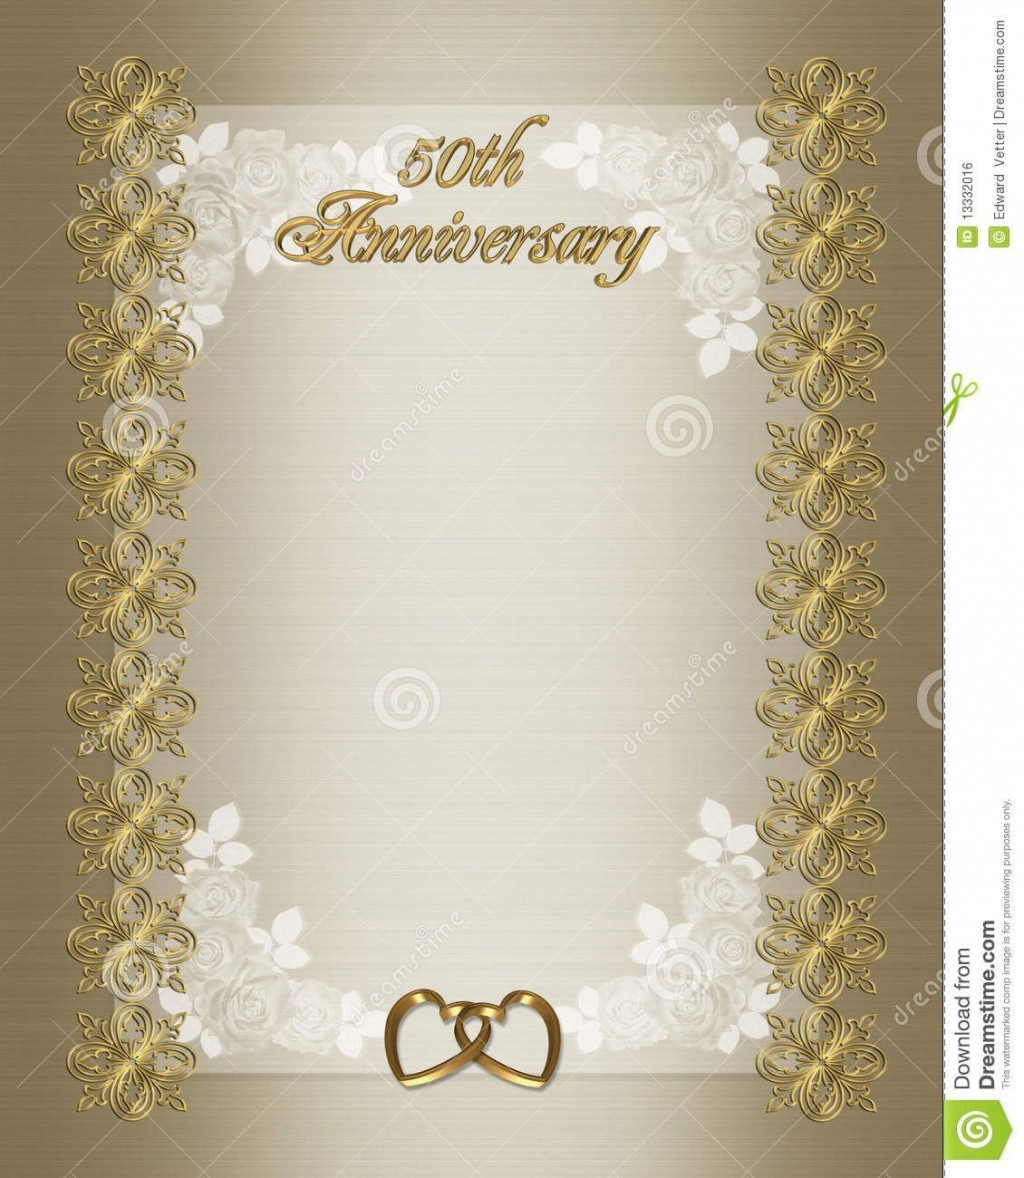 008 Archaicawful 50th Wedding Anniversary Invitation Template Free Download Concept  GoldenLarge